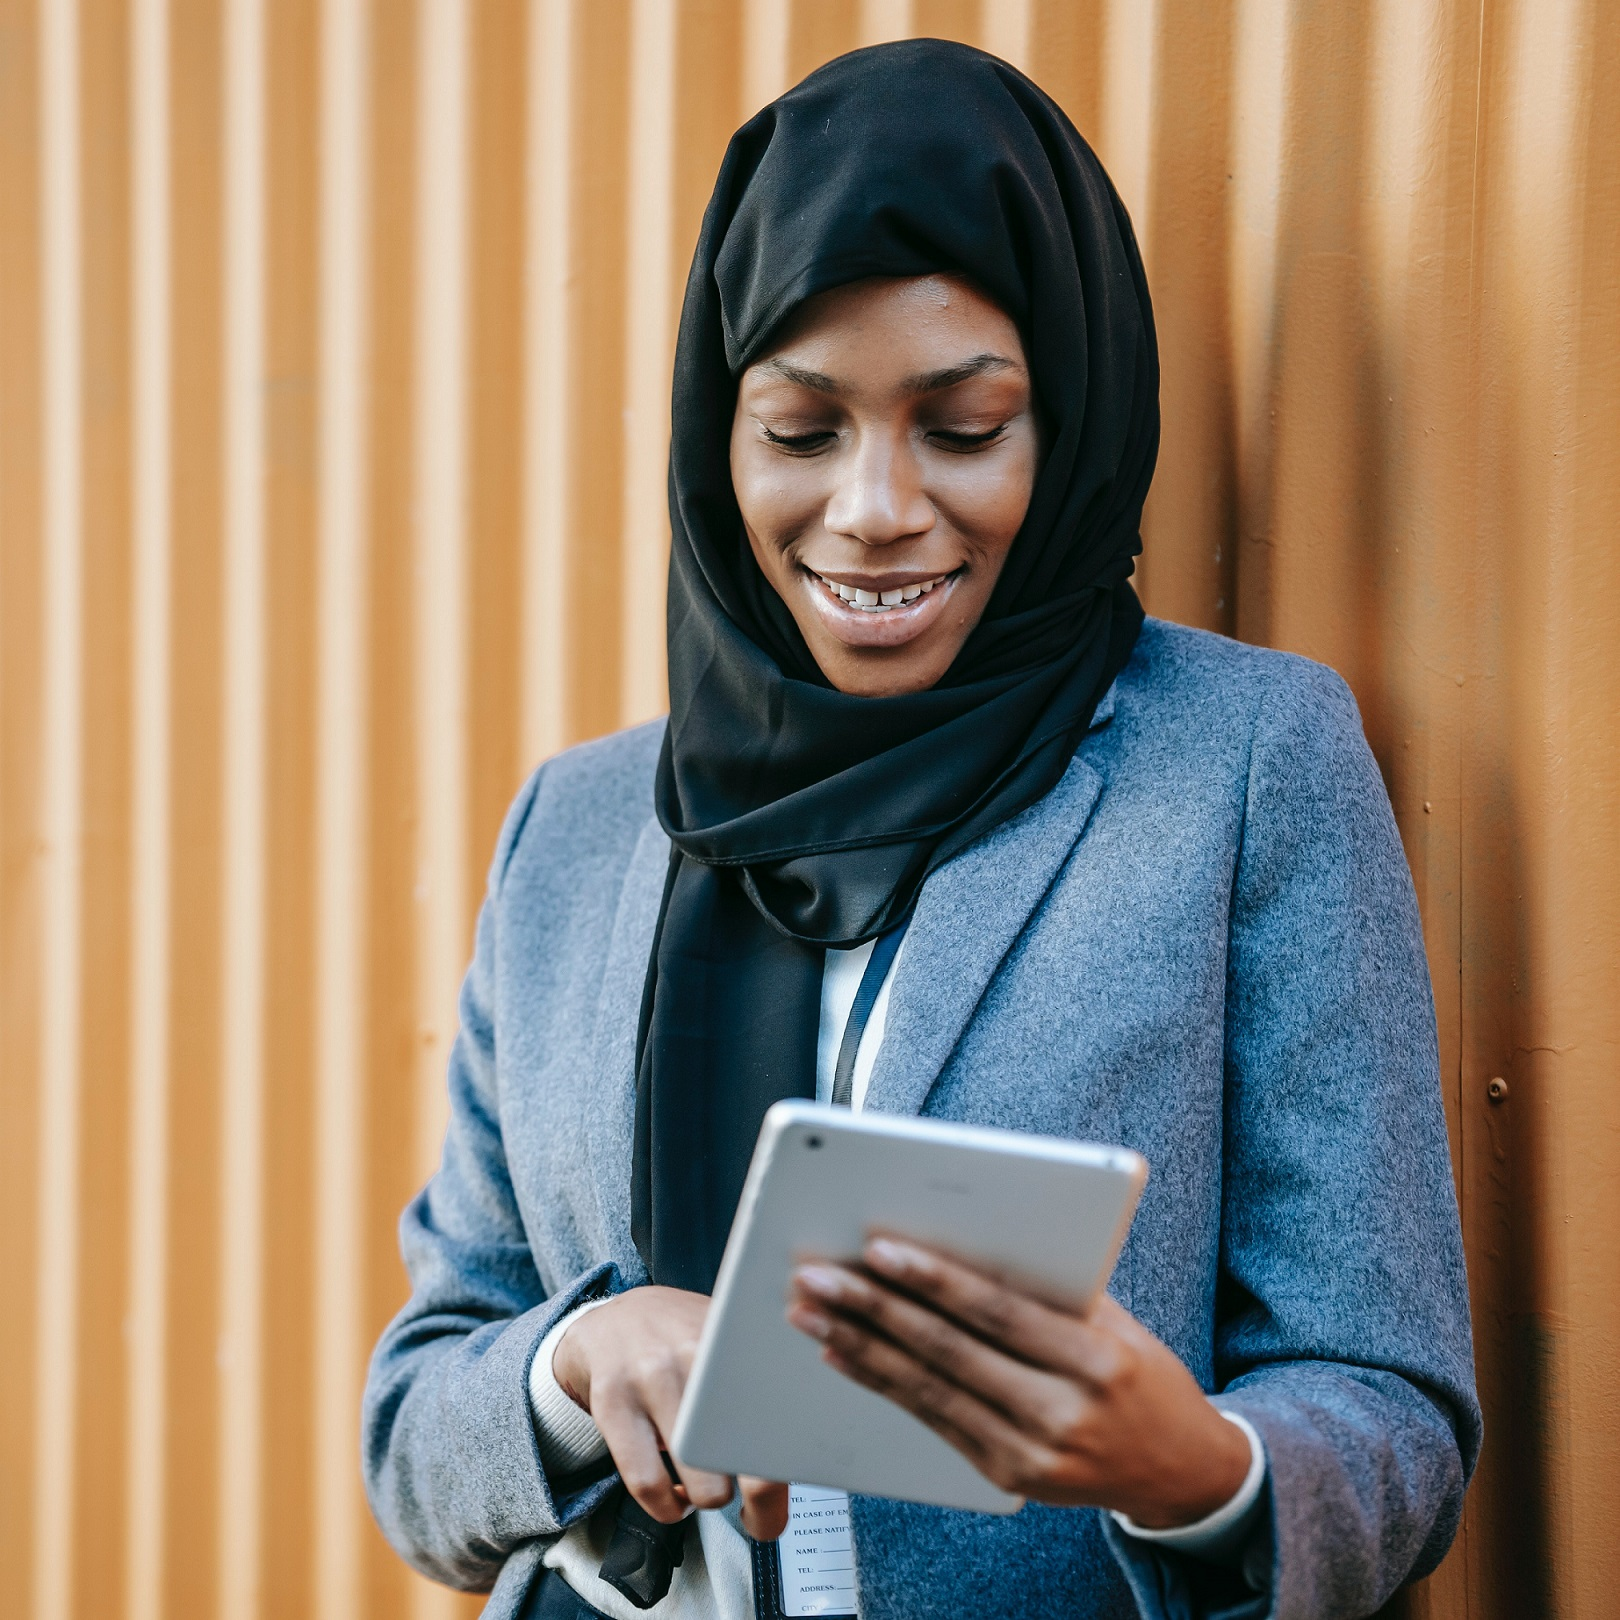 African woman smiles while in business attire, using her tablet.